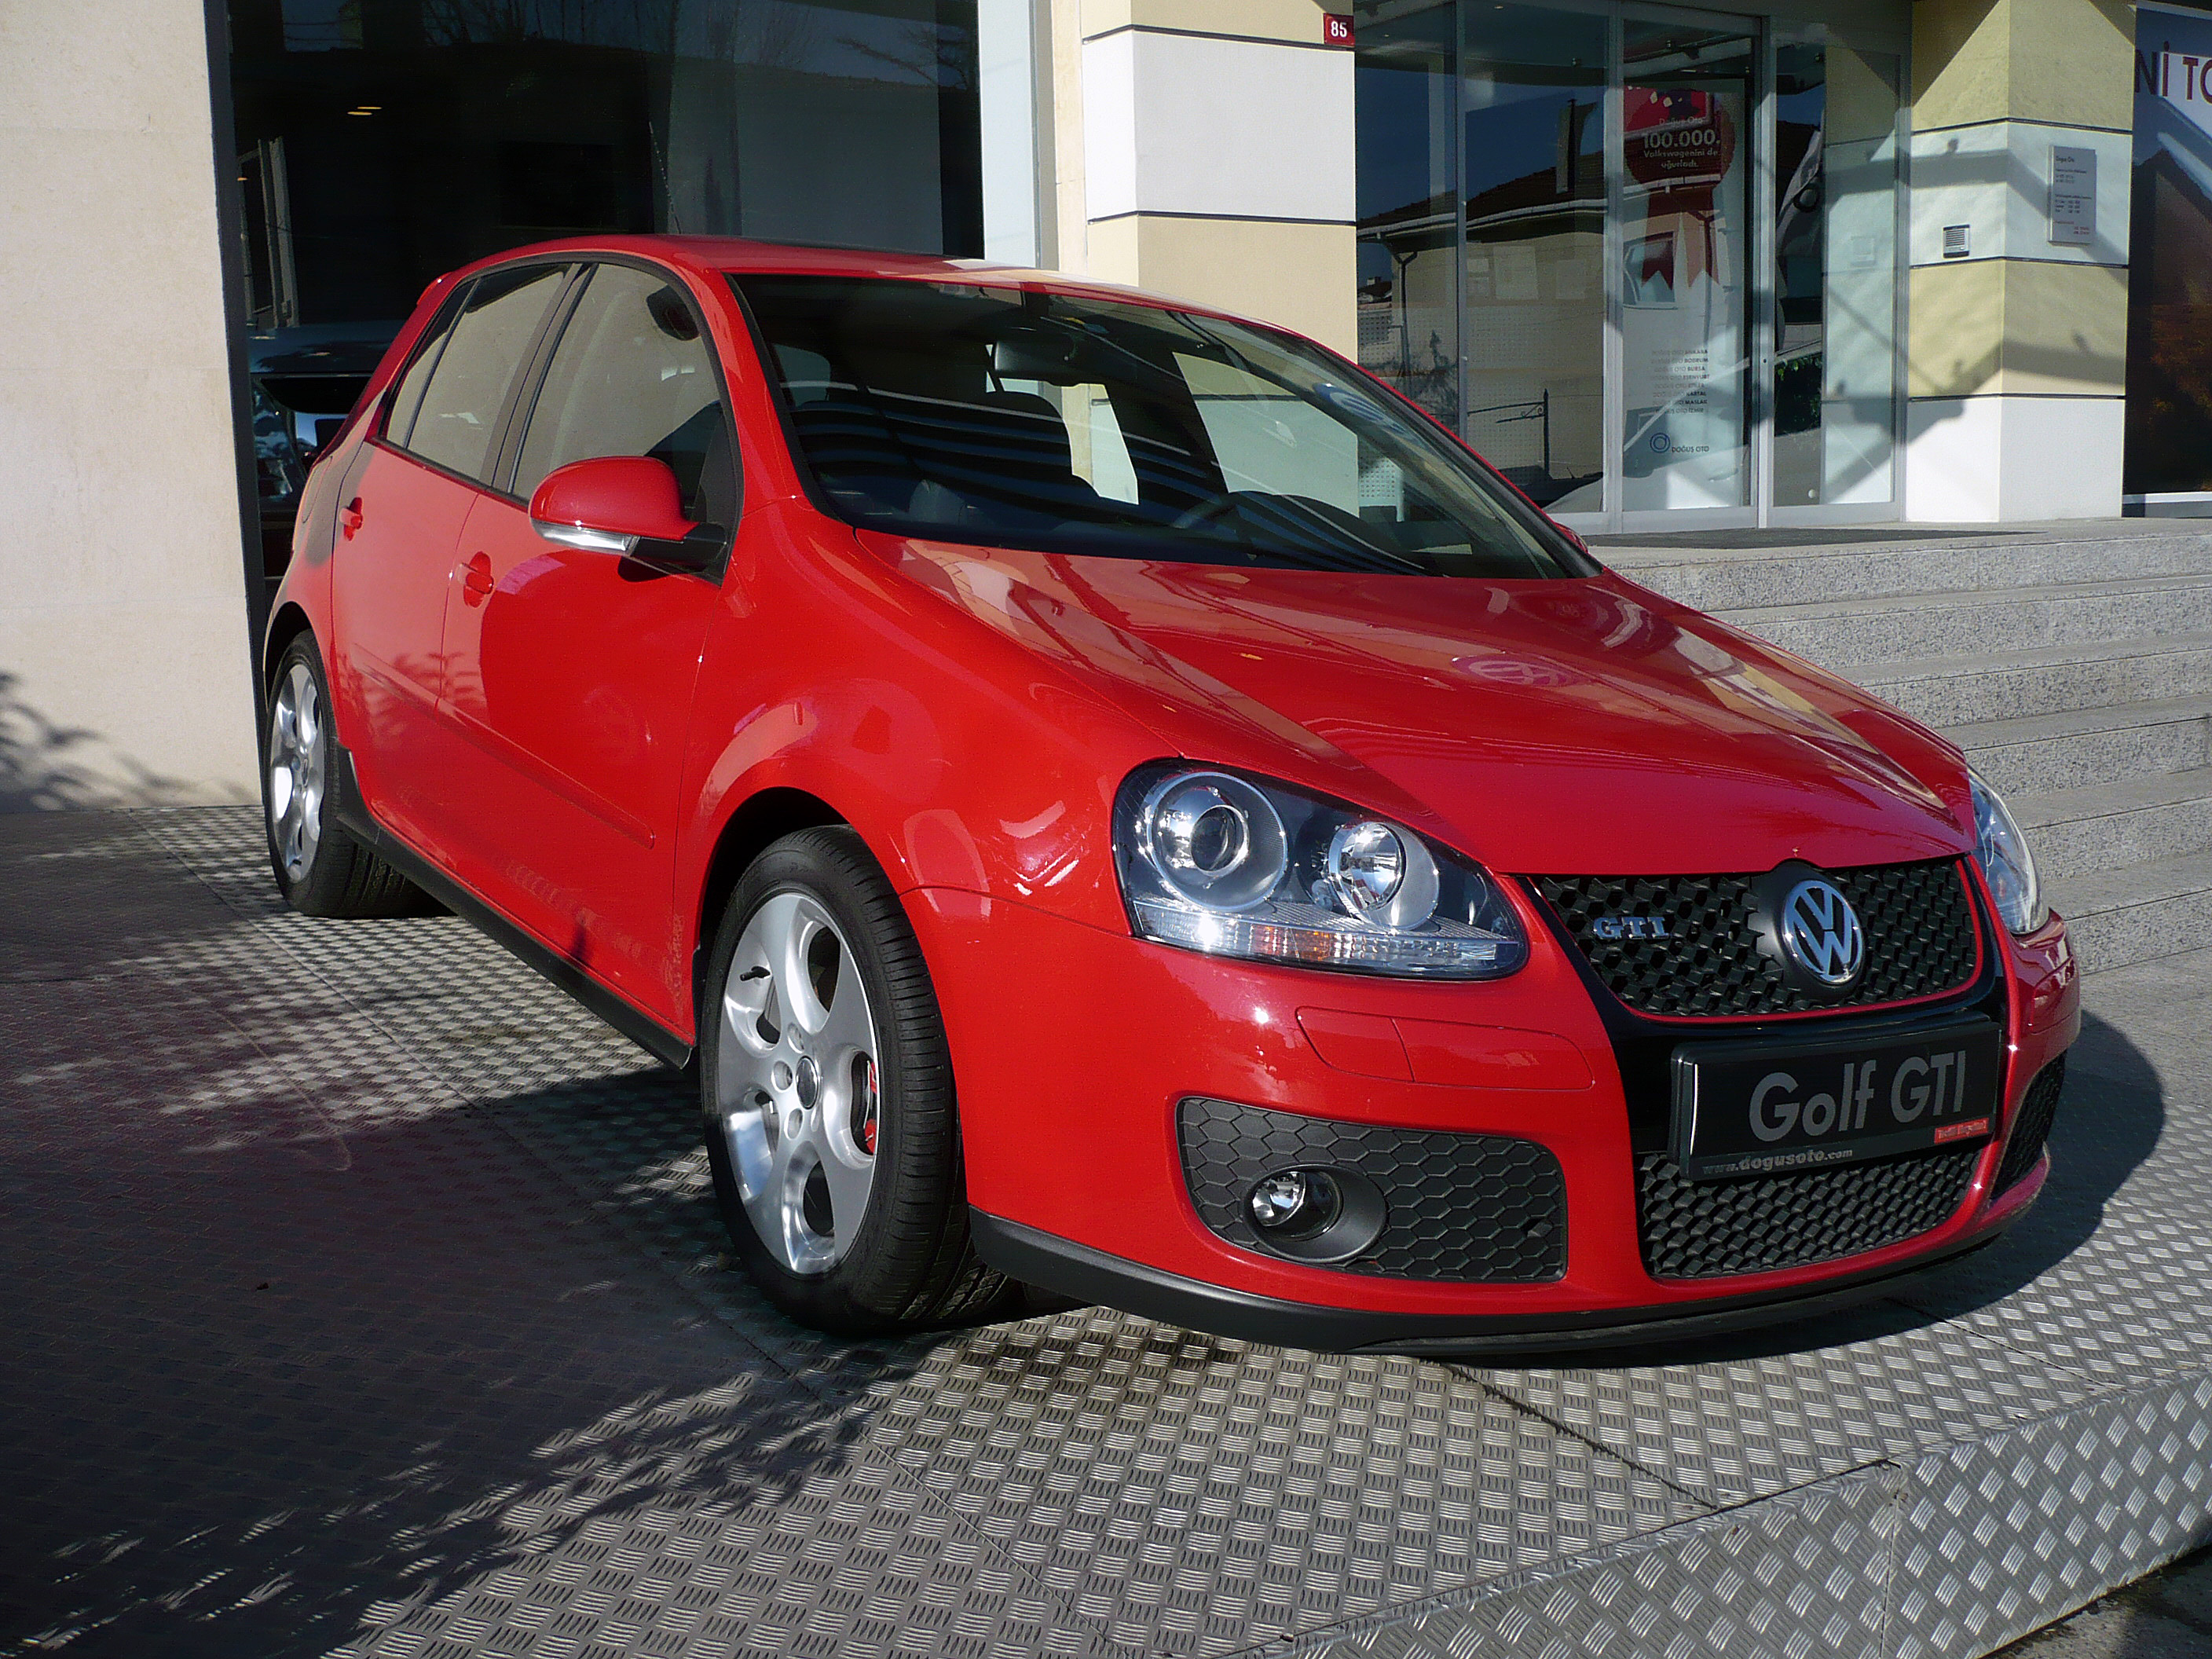 why olympia buyers choose the vw golf gti i 5 cars newsi 5 cars news i 5 cars news